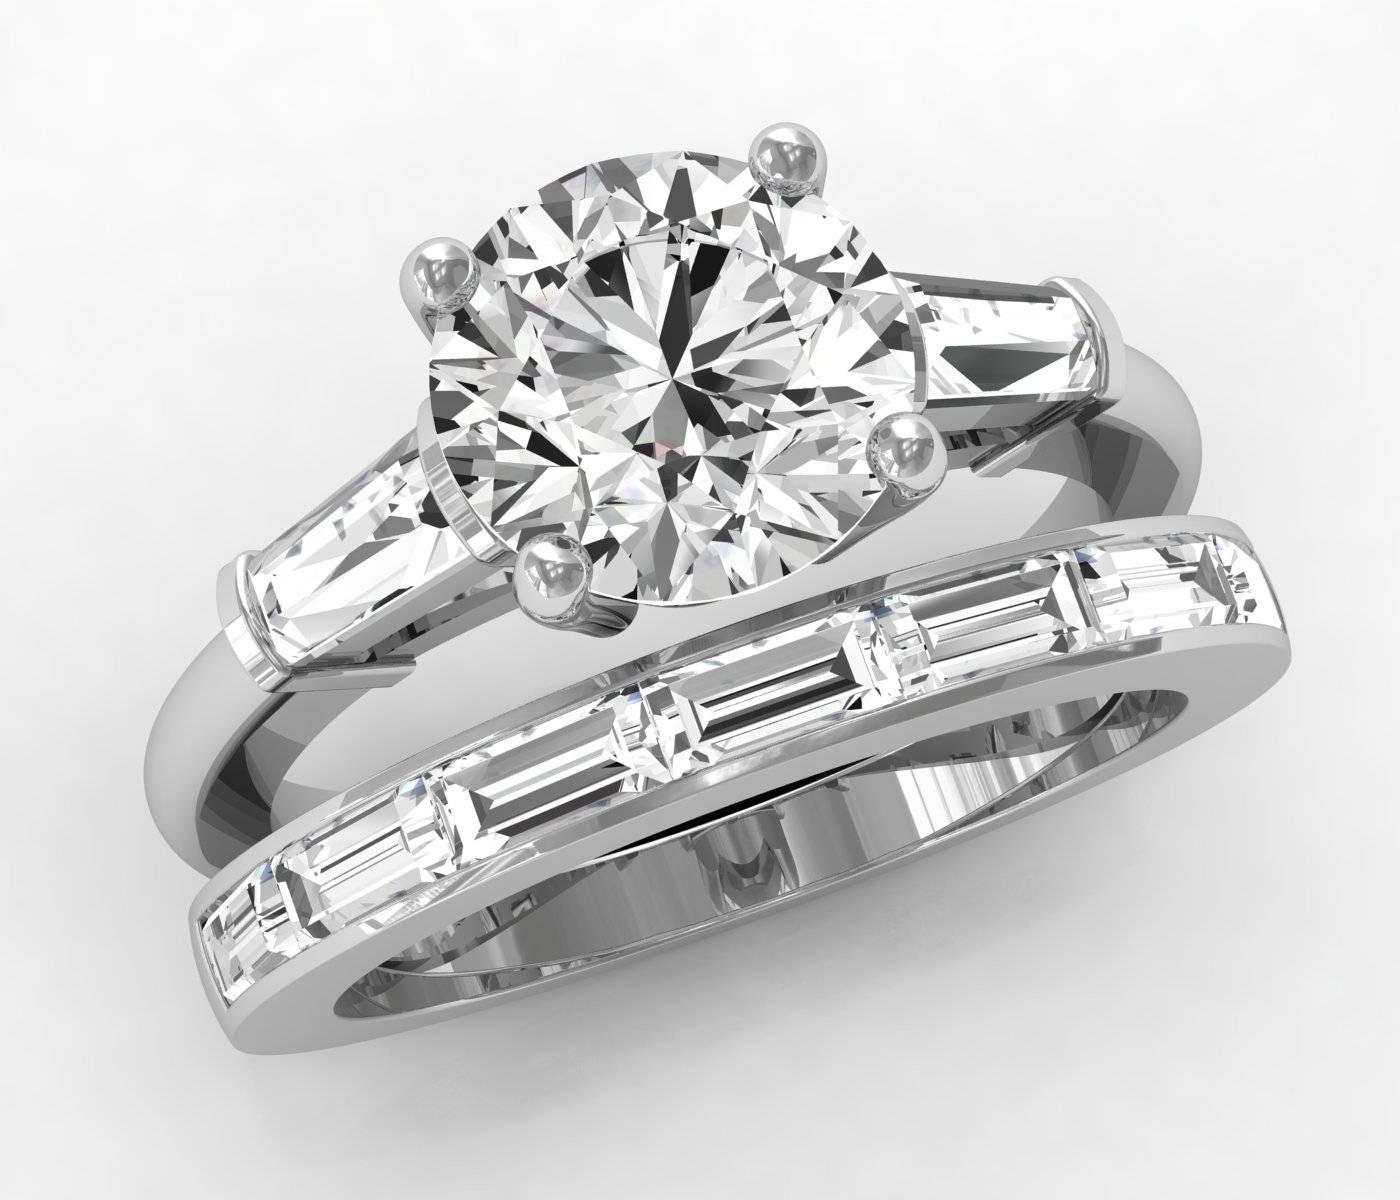 ws fishtail platinum set cumming diamond bridal ring prongs plat wedding vintage products size engagement